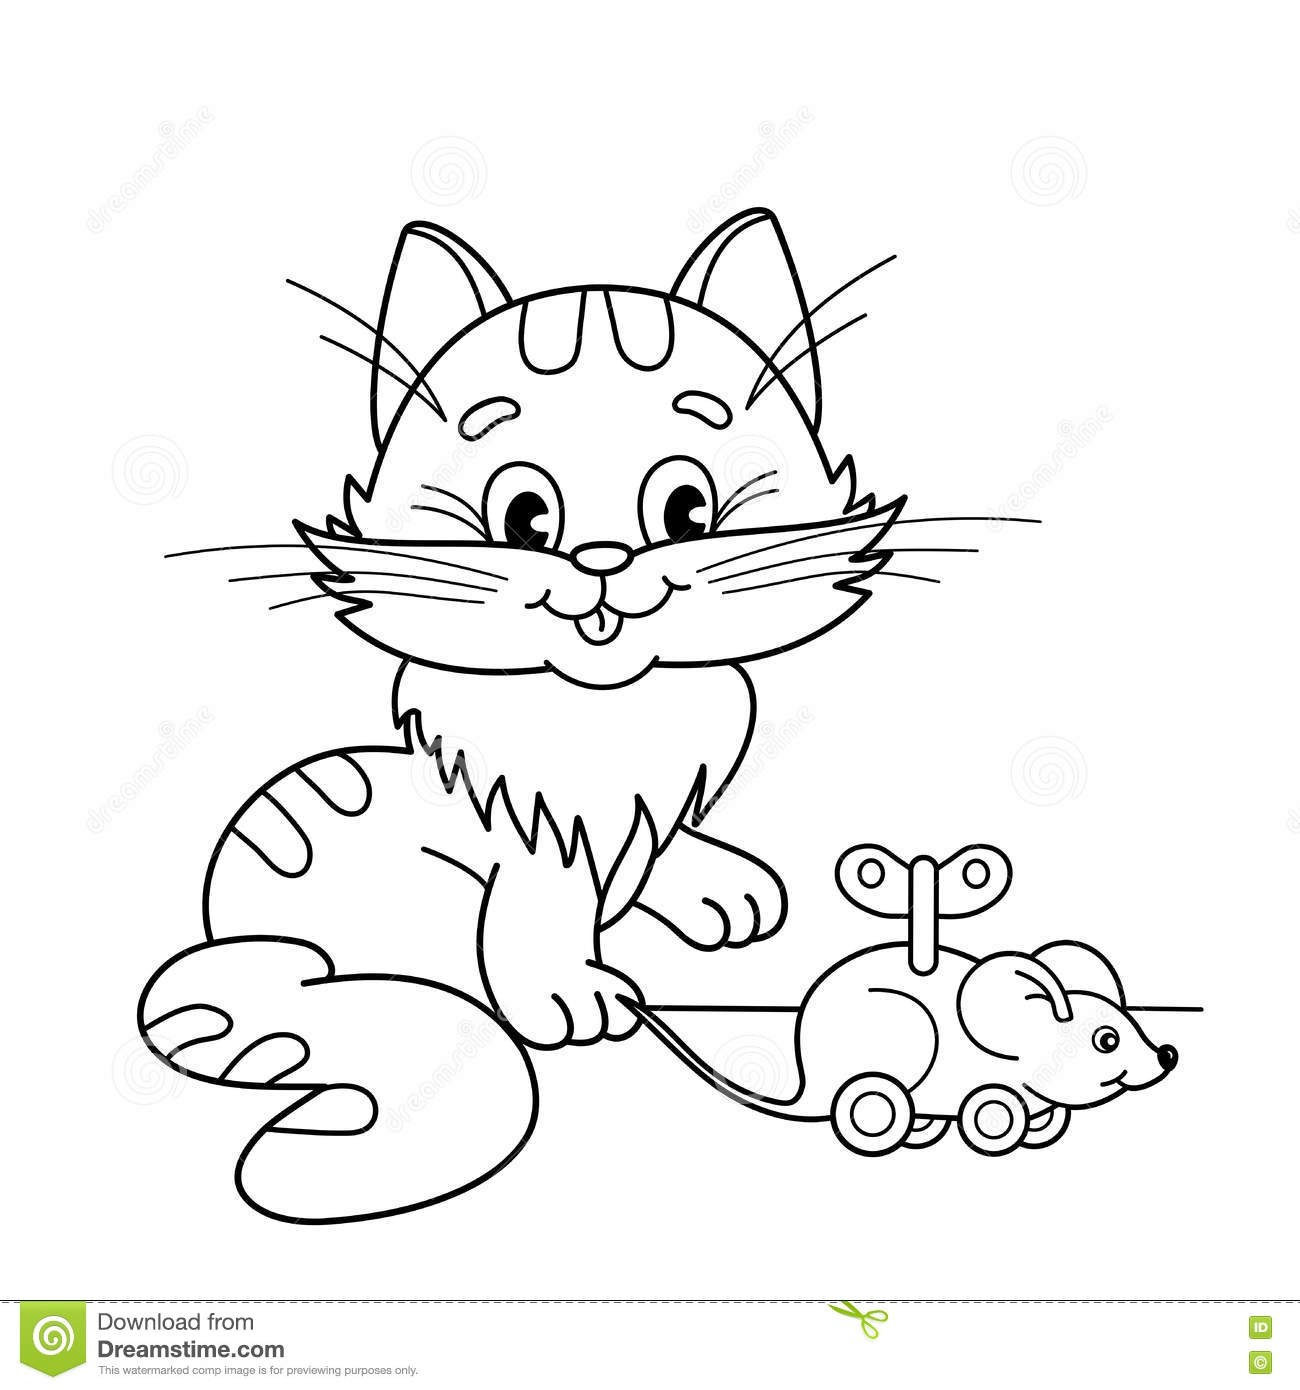 Cat And Mouse Coloring Pages At Getcolorings